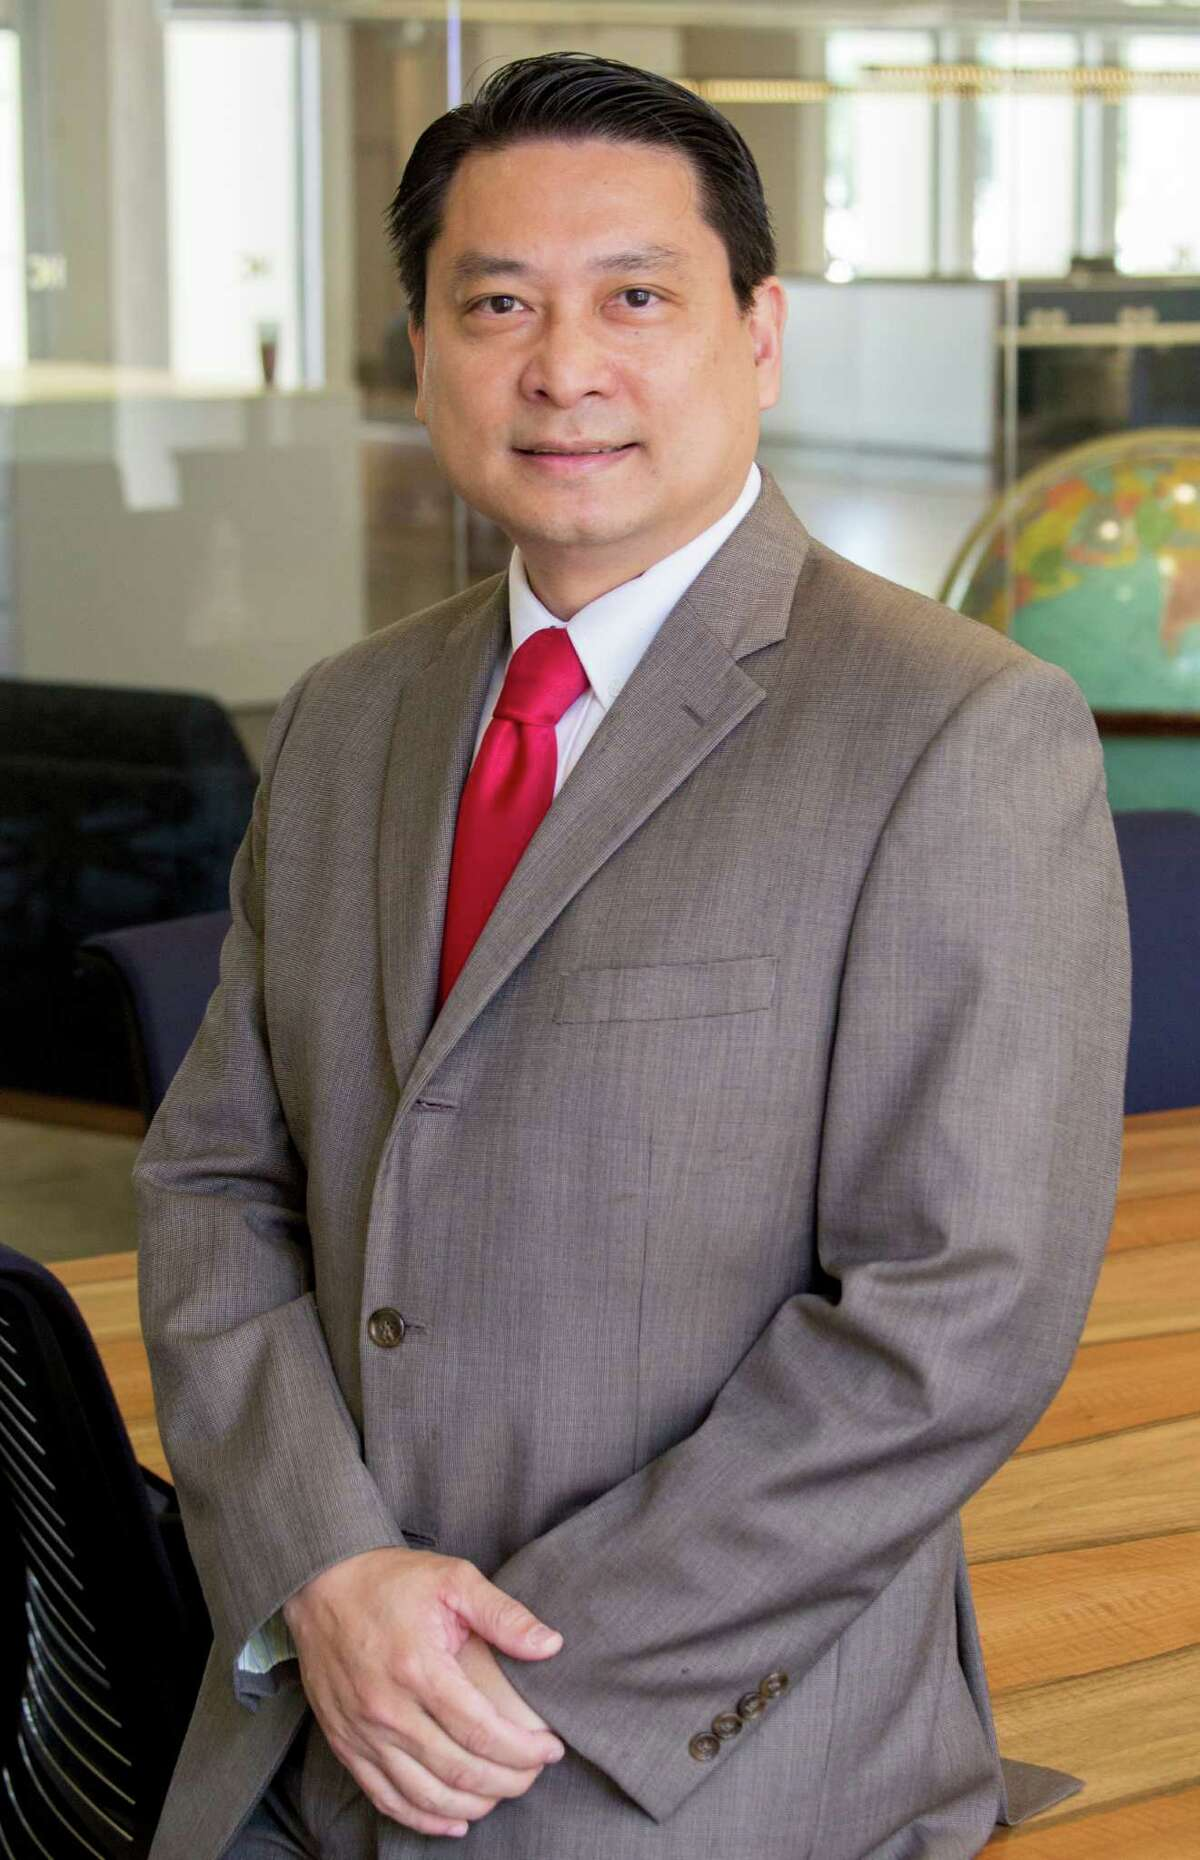 Bryan Chu is a candidate for Texas House of Representatives, District 149 shown Thursday August 25, 2016. (JeremyCarter/ Houston Chronicle) 00068544A